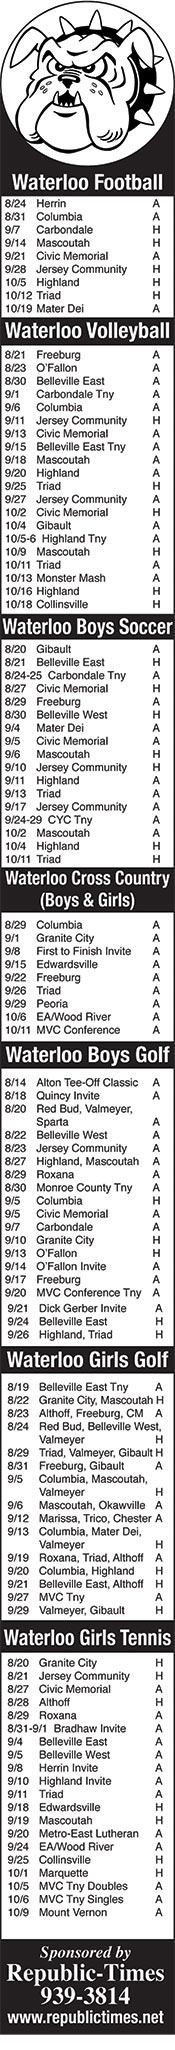 Waterloo Sports Schedules 2018-2019